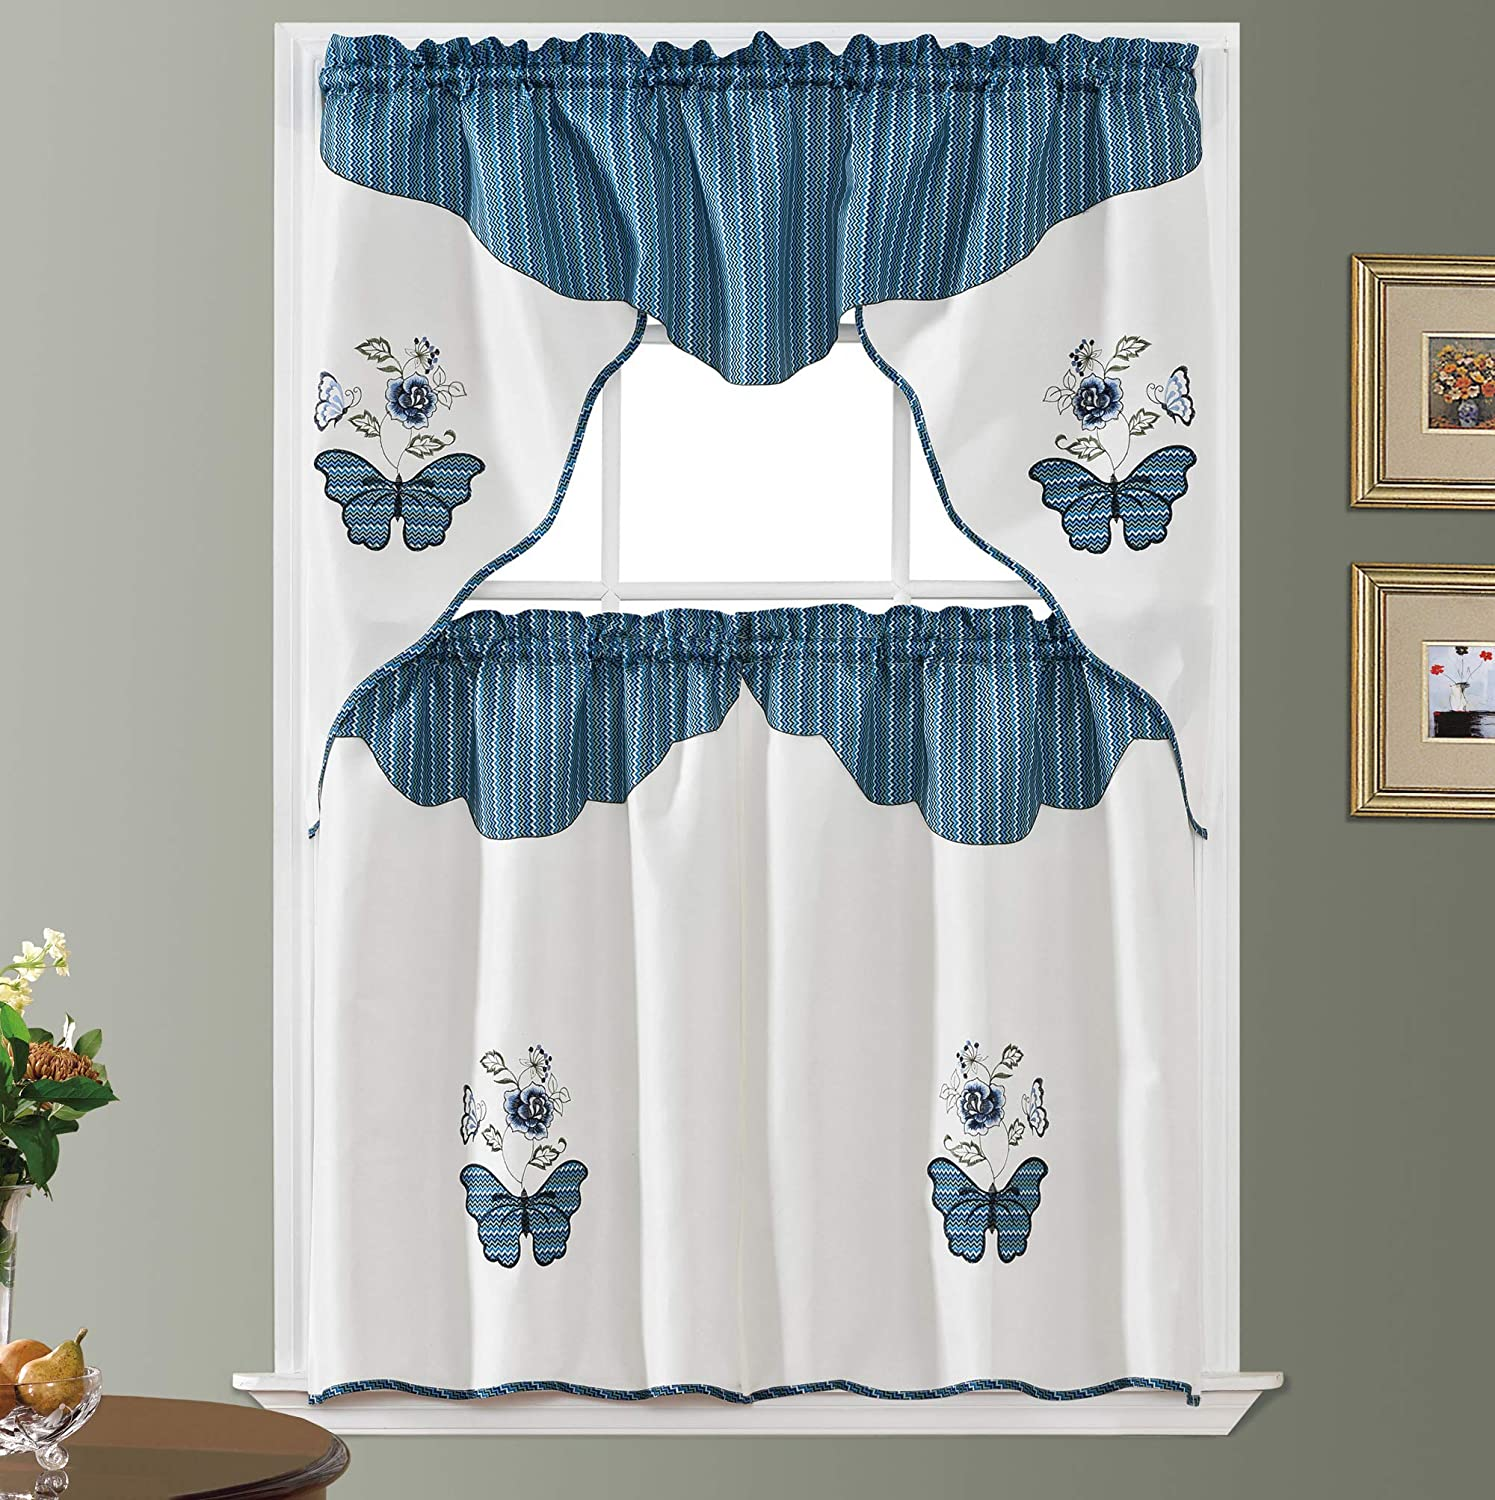 Butterfly Applique. 3pcs Swag Valance and Tiers Set. Big Butterfly Applique of Print Fabric and Matching Color Embroidery of Rose and Butterfly Combination. (Blue Ripple)